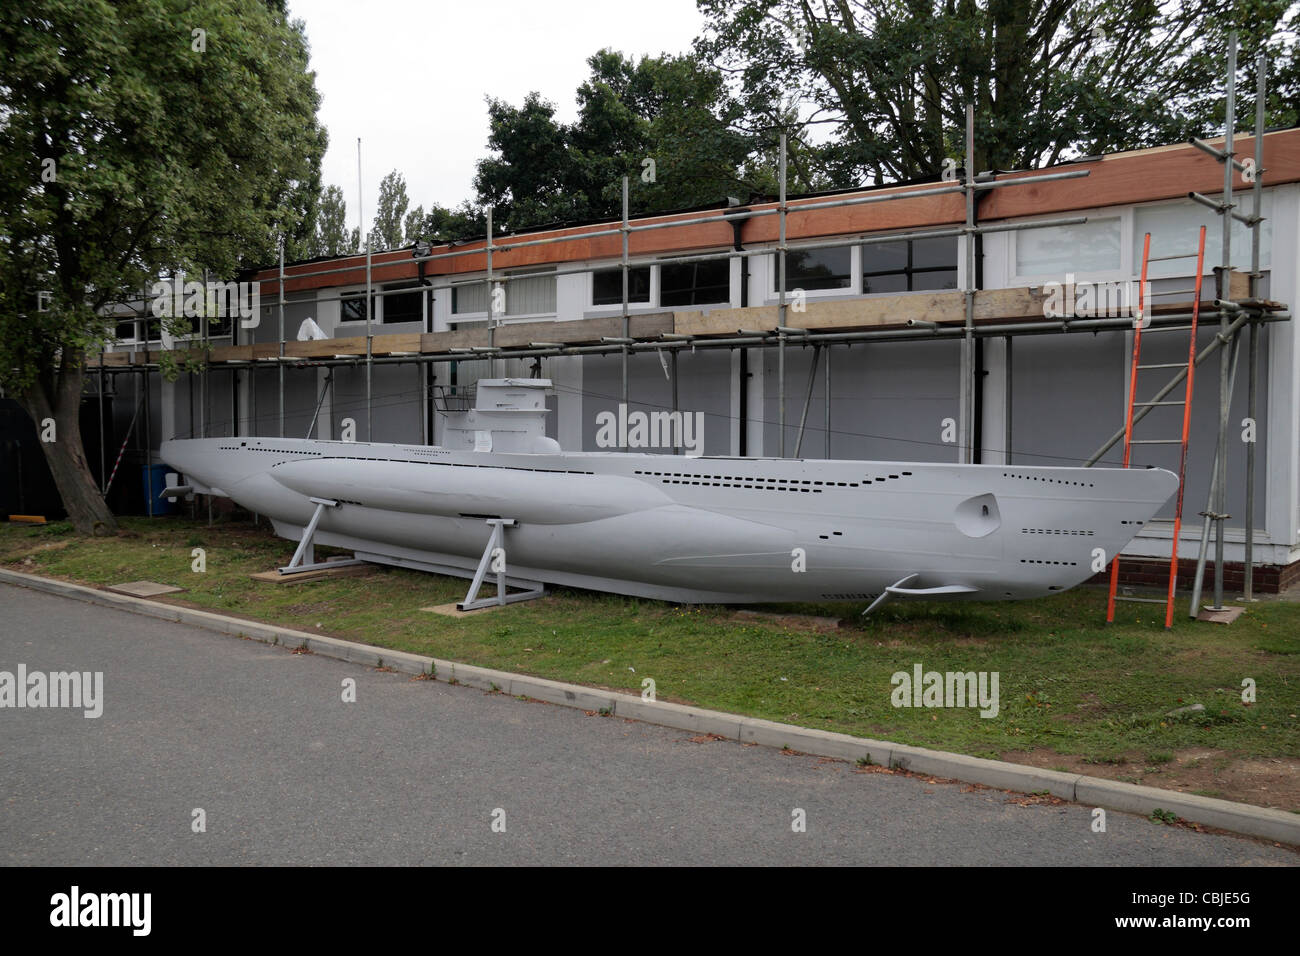 A Scale Model Of A German World War Ii U Boat In The Grounds Of Stock Photo